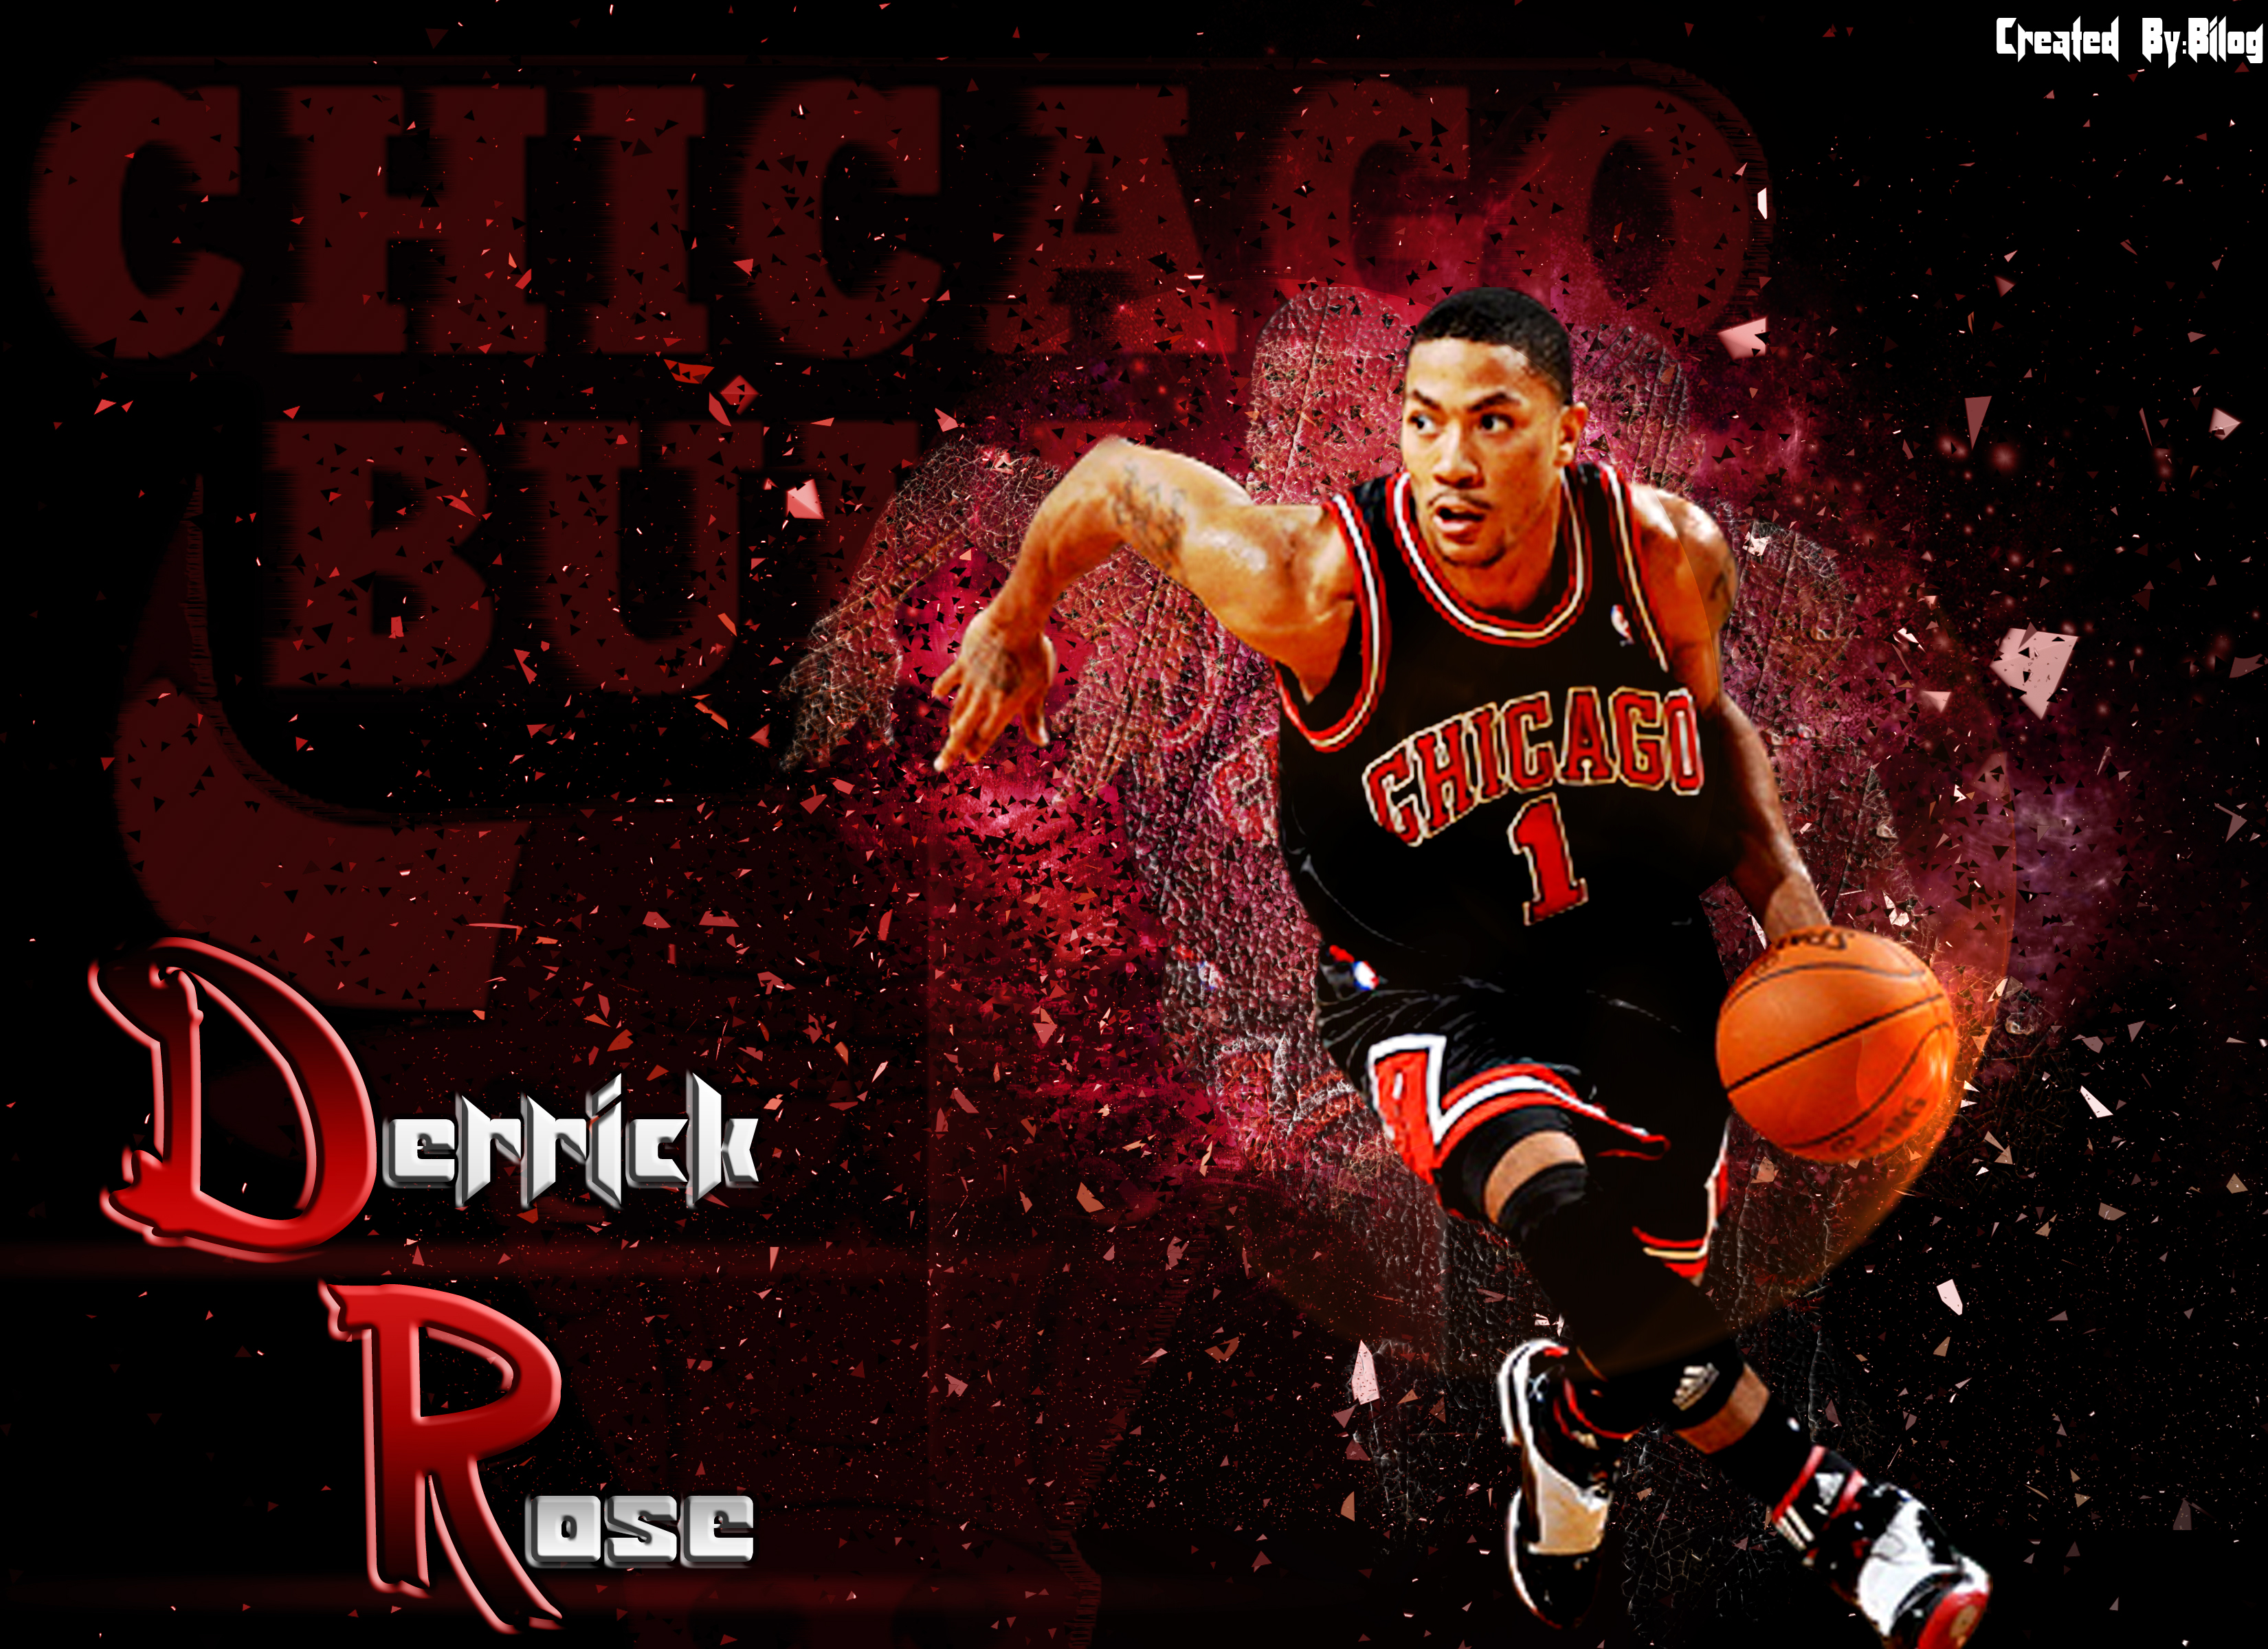 Download Derrick Rose Wallpaper HD 3300x2400